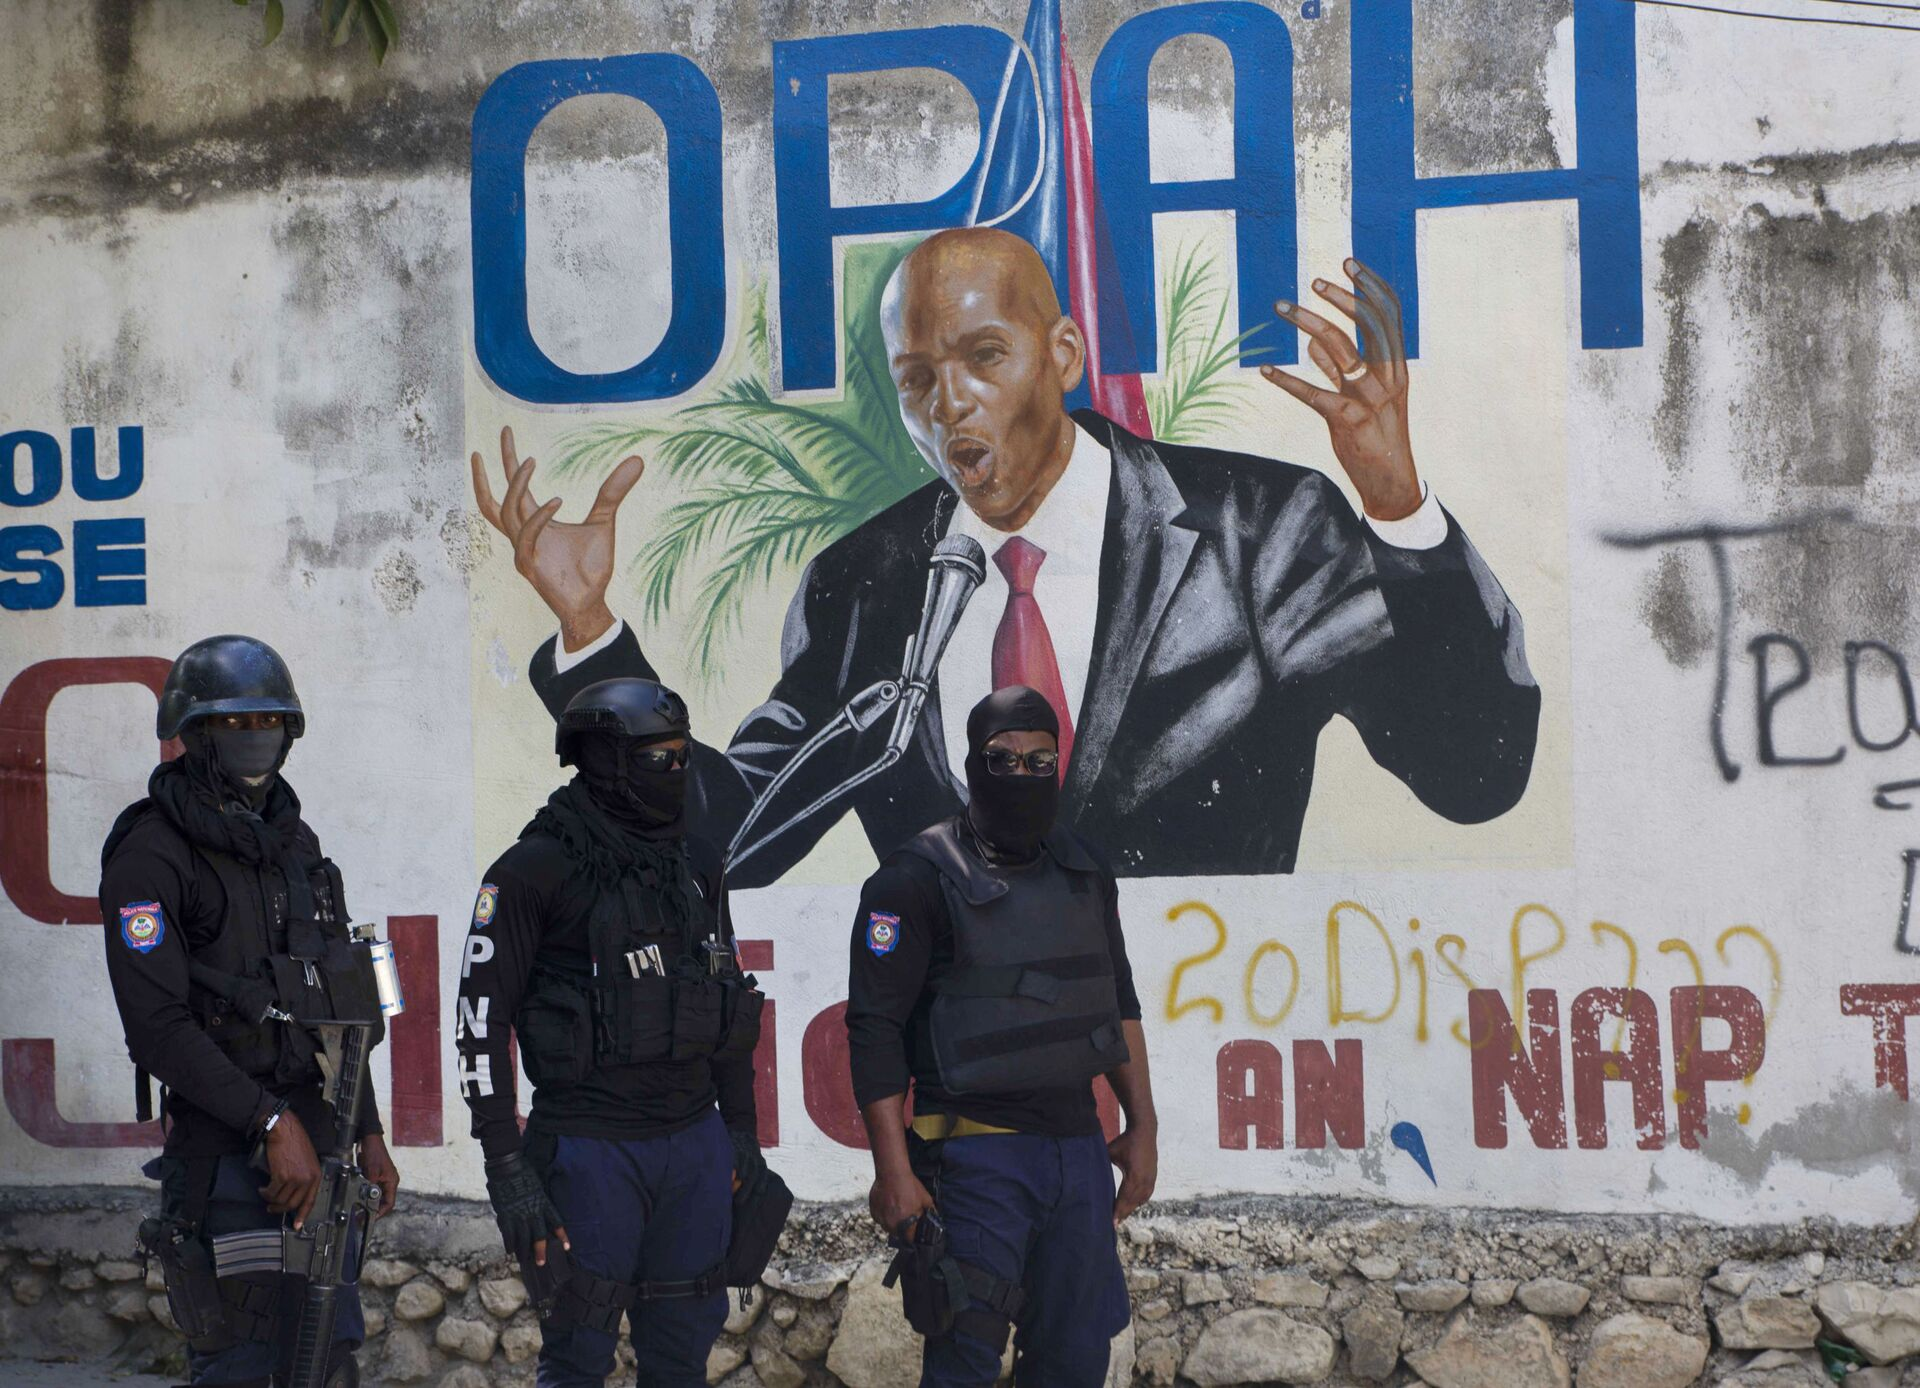 Police stand near a mural featuring Haitian President Jovenel Moise, near the leader's residence where he was killed by gunmen in the early morning hours in Port-au-Prince, Haiti, Wednesday, July 7, 2021. - Sputnik International, 1920, 07.09.2021